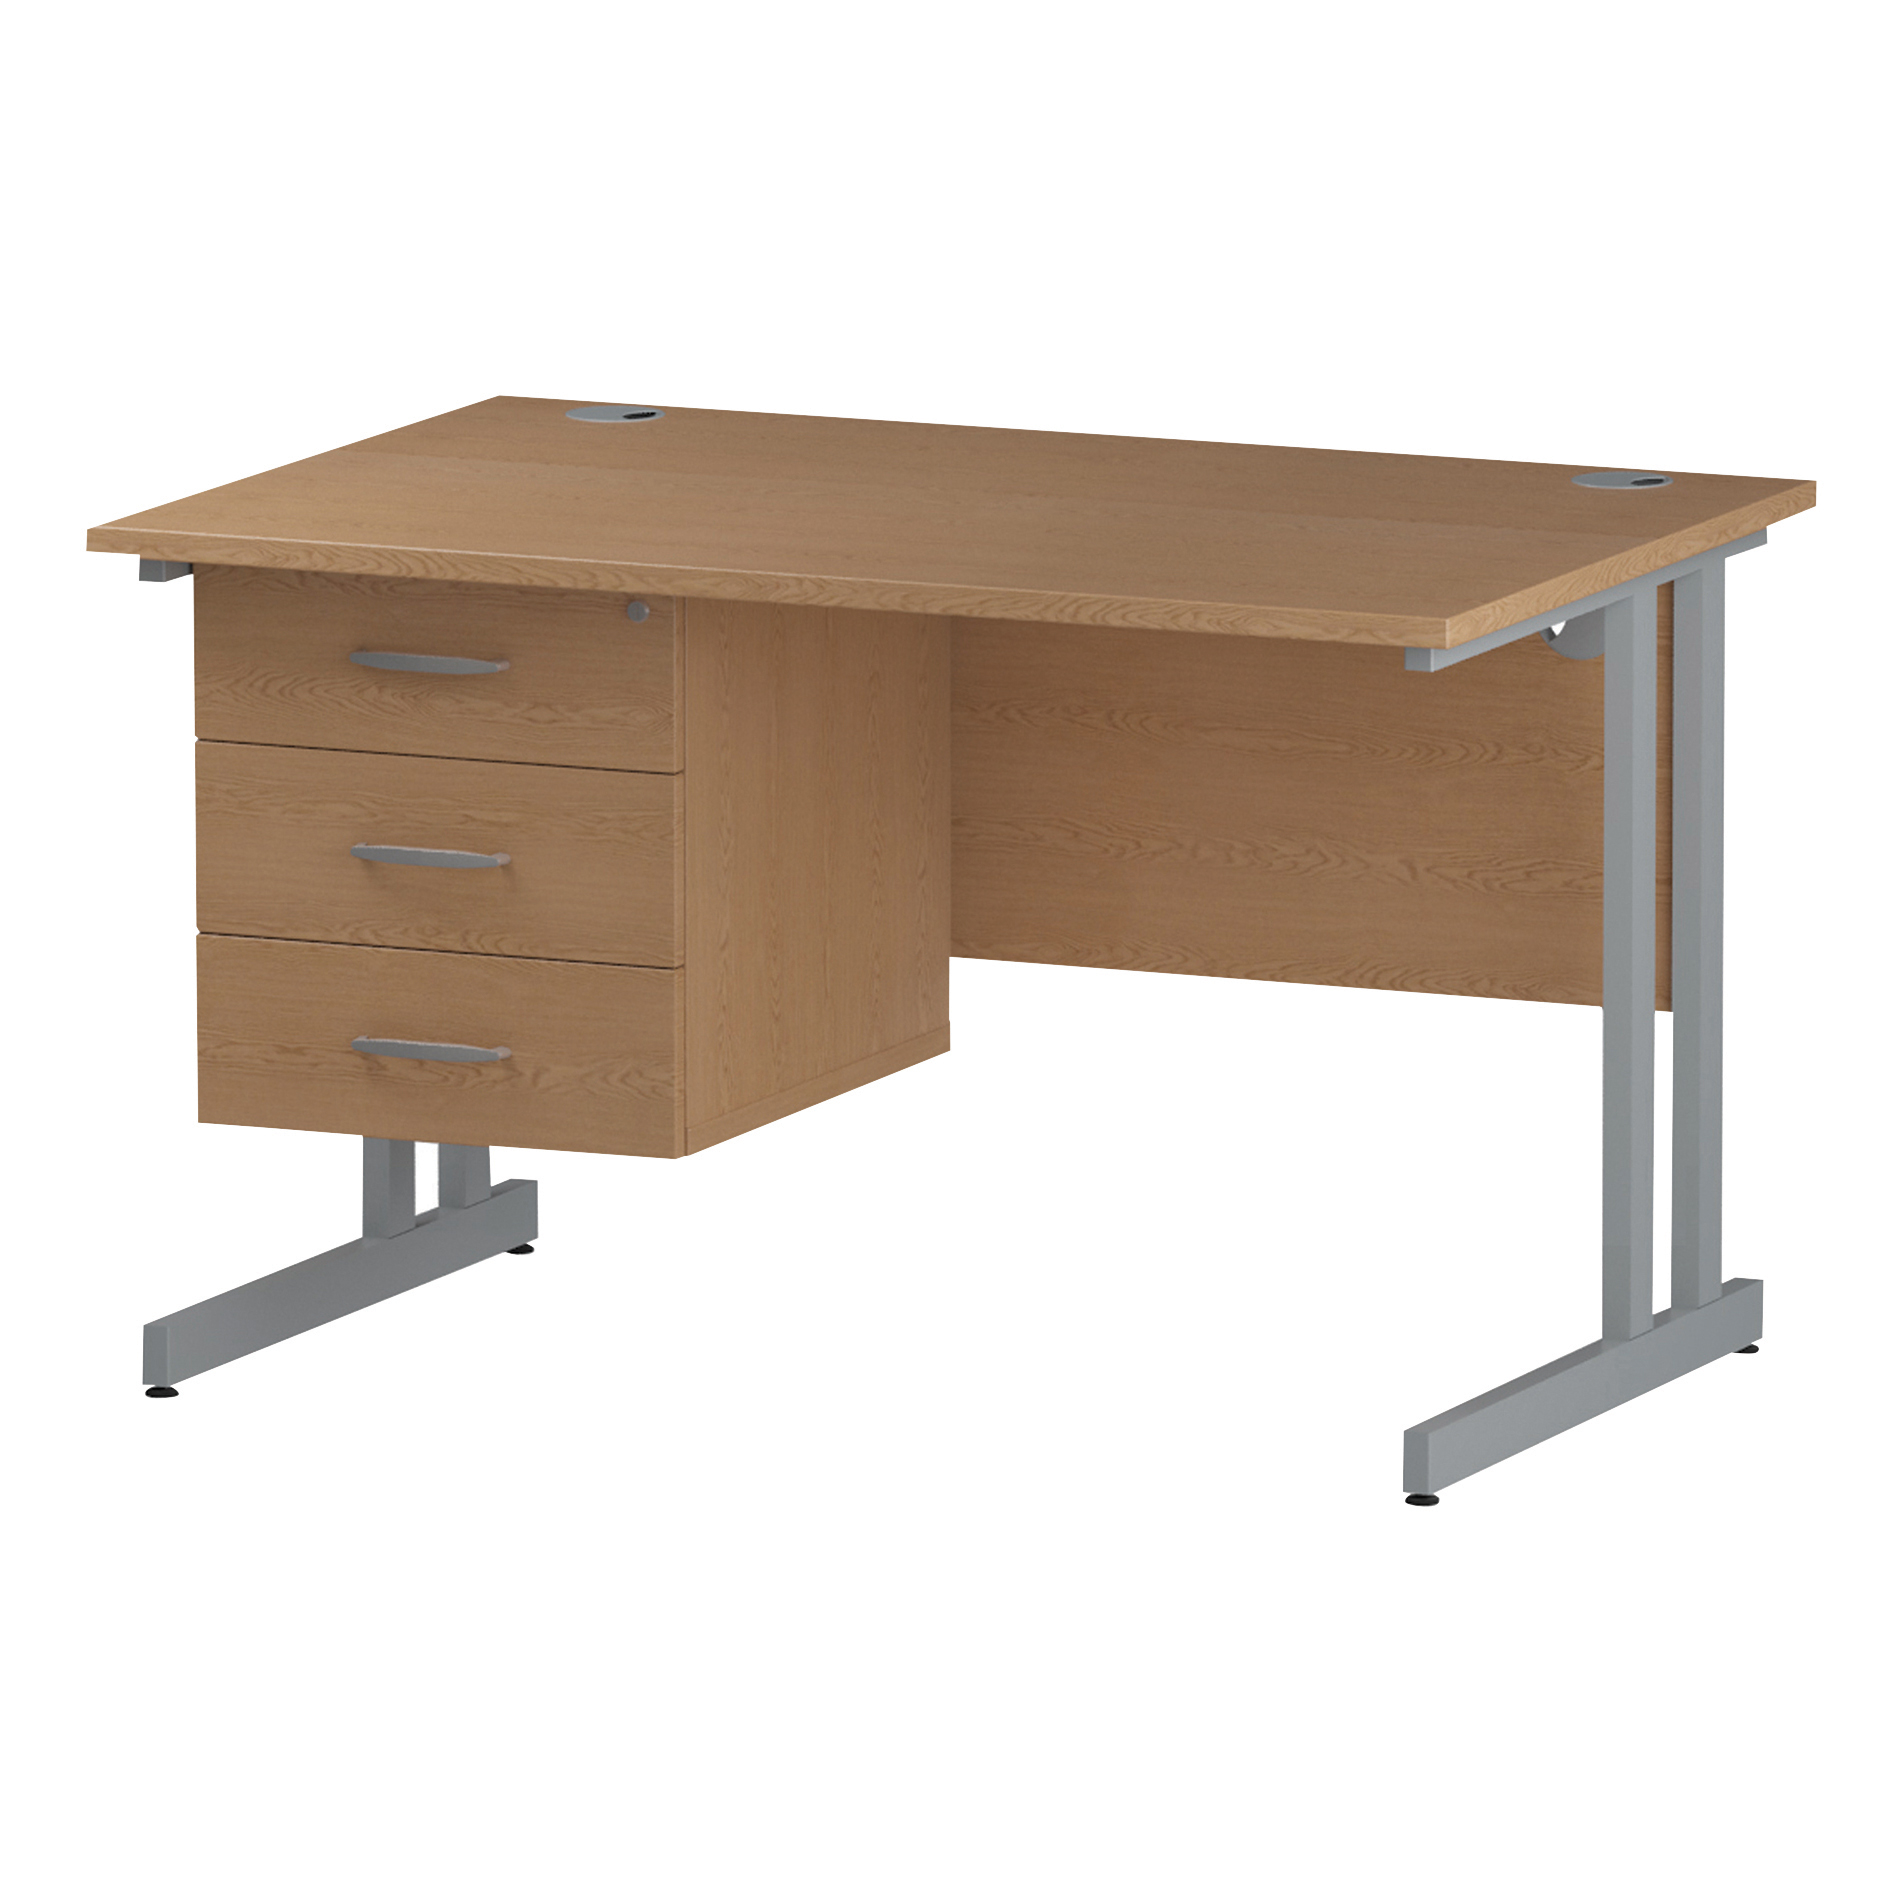 Trexus Rectangular Desk Silver Cantilever Leg 1200x800mm Fixed Pedestal 3 Drawers Oak Ref I002665